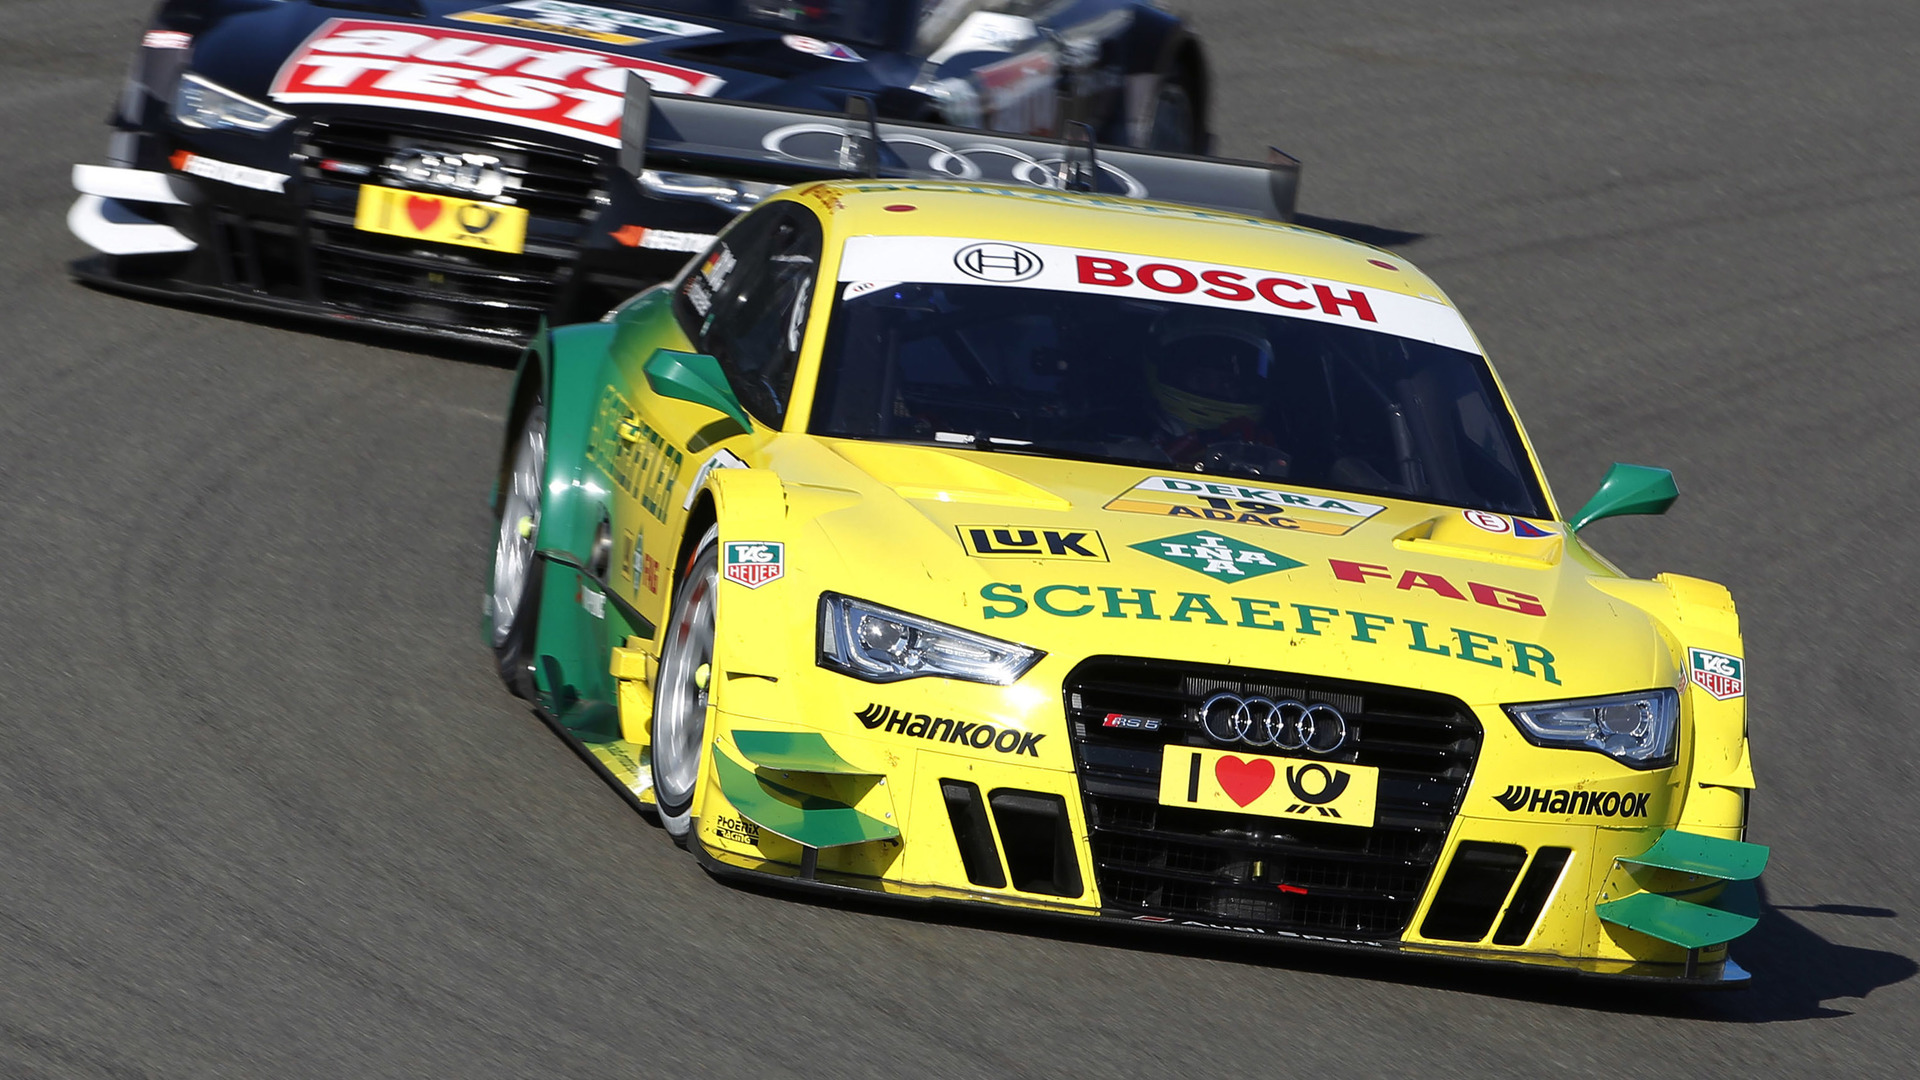 DTM Best Moments part 4 of 5: Audi RS 5 DTM with Mike Rockenfeller